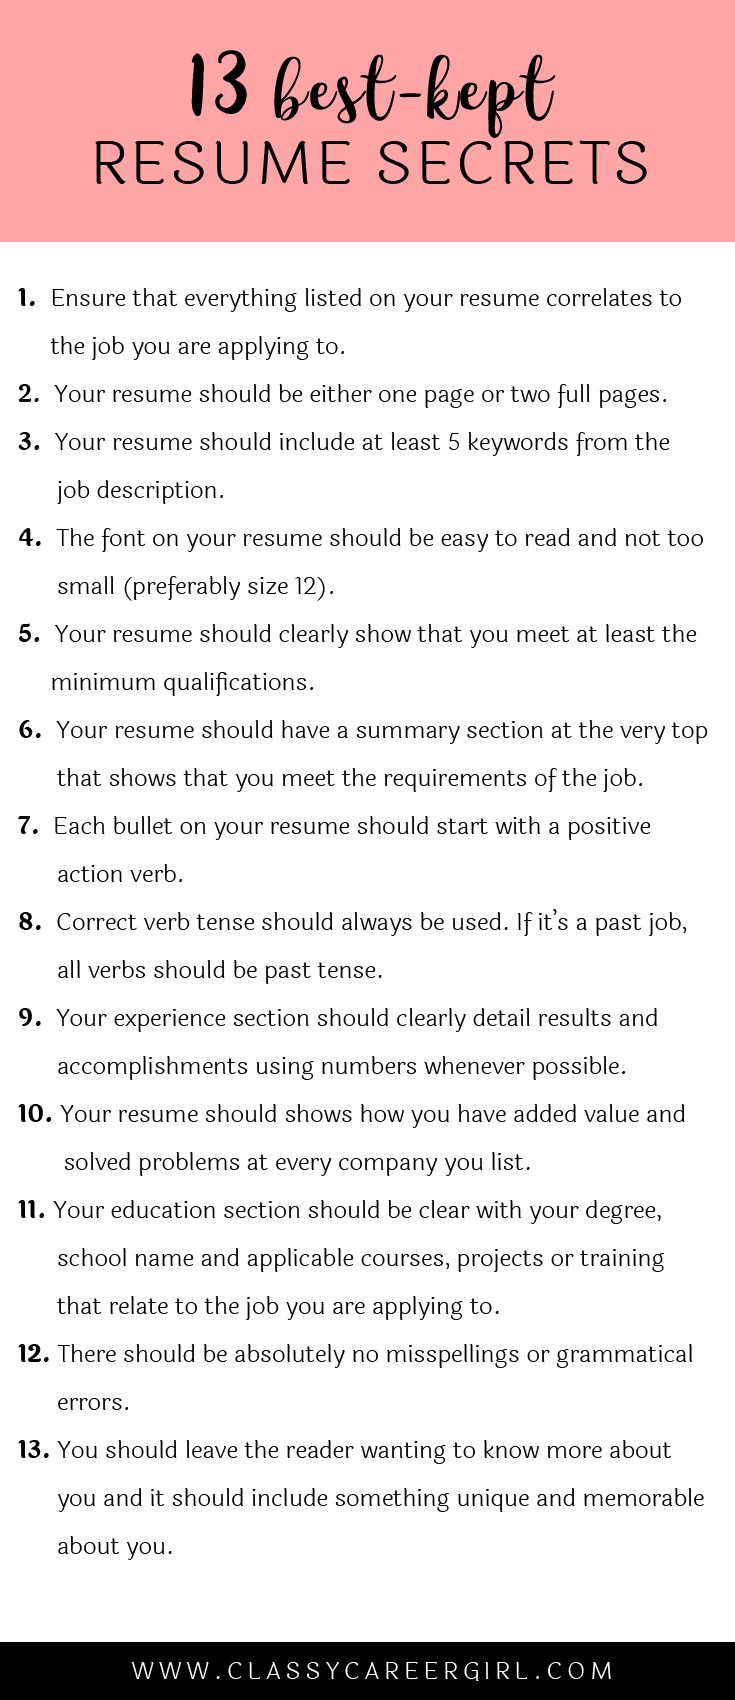 Opposenewapstandardsus  Winsome  Ideas About Resume On Pinterest  Cv Format Resume Cv And  With Magnificent Some Hiring Managers Will Toss Your Resume Out If You Dont Know These  With Enchanting Marketing Skills Resume Also Aviation Resume In Addition Sample Resume Formats And Security Resume Examples As Well As How To Write Resume Cover Letter Additionally Resume Skills List Examples From Pinterestcom With Opposenewapstandardsus  Magnificent  Ideas About Resume On Pinterest  Cv Format Resume Cv And  With Enchanting Some Hiring Managers Will Toss Your Resume Out If You Dont Know These  And Winsome Marketing Skills Resume Also Aviation Resume In Addition Sample Resume Formats From Pinterestcom